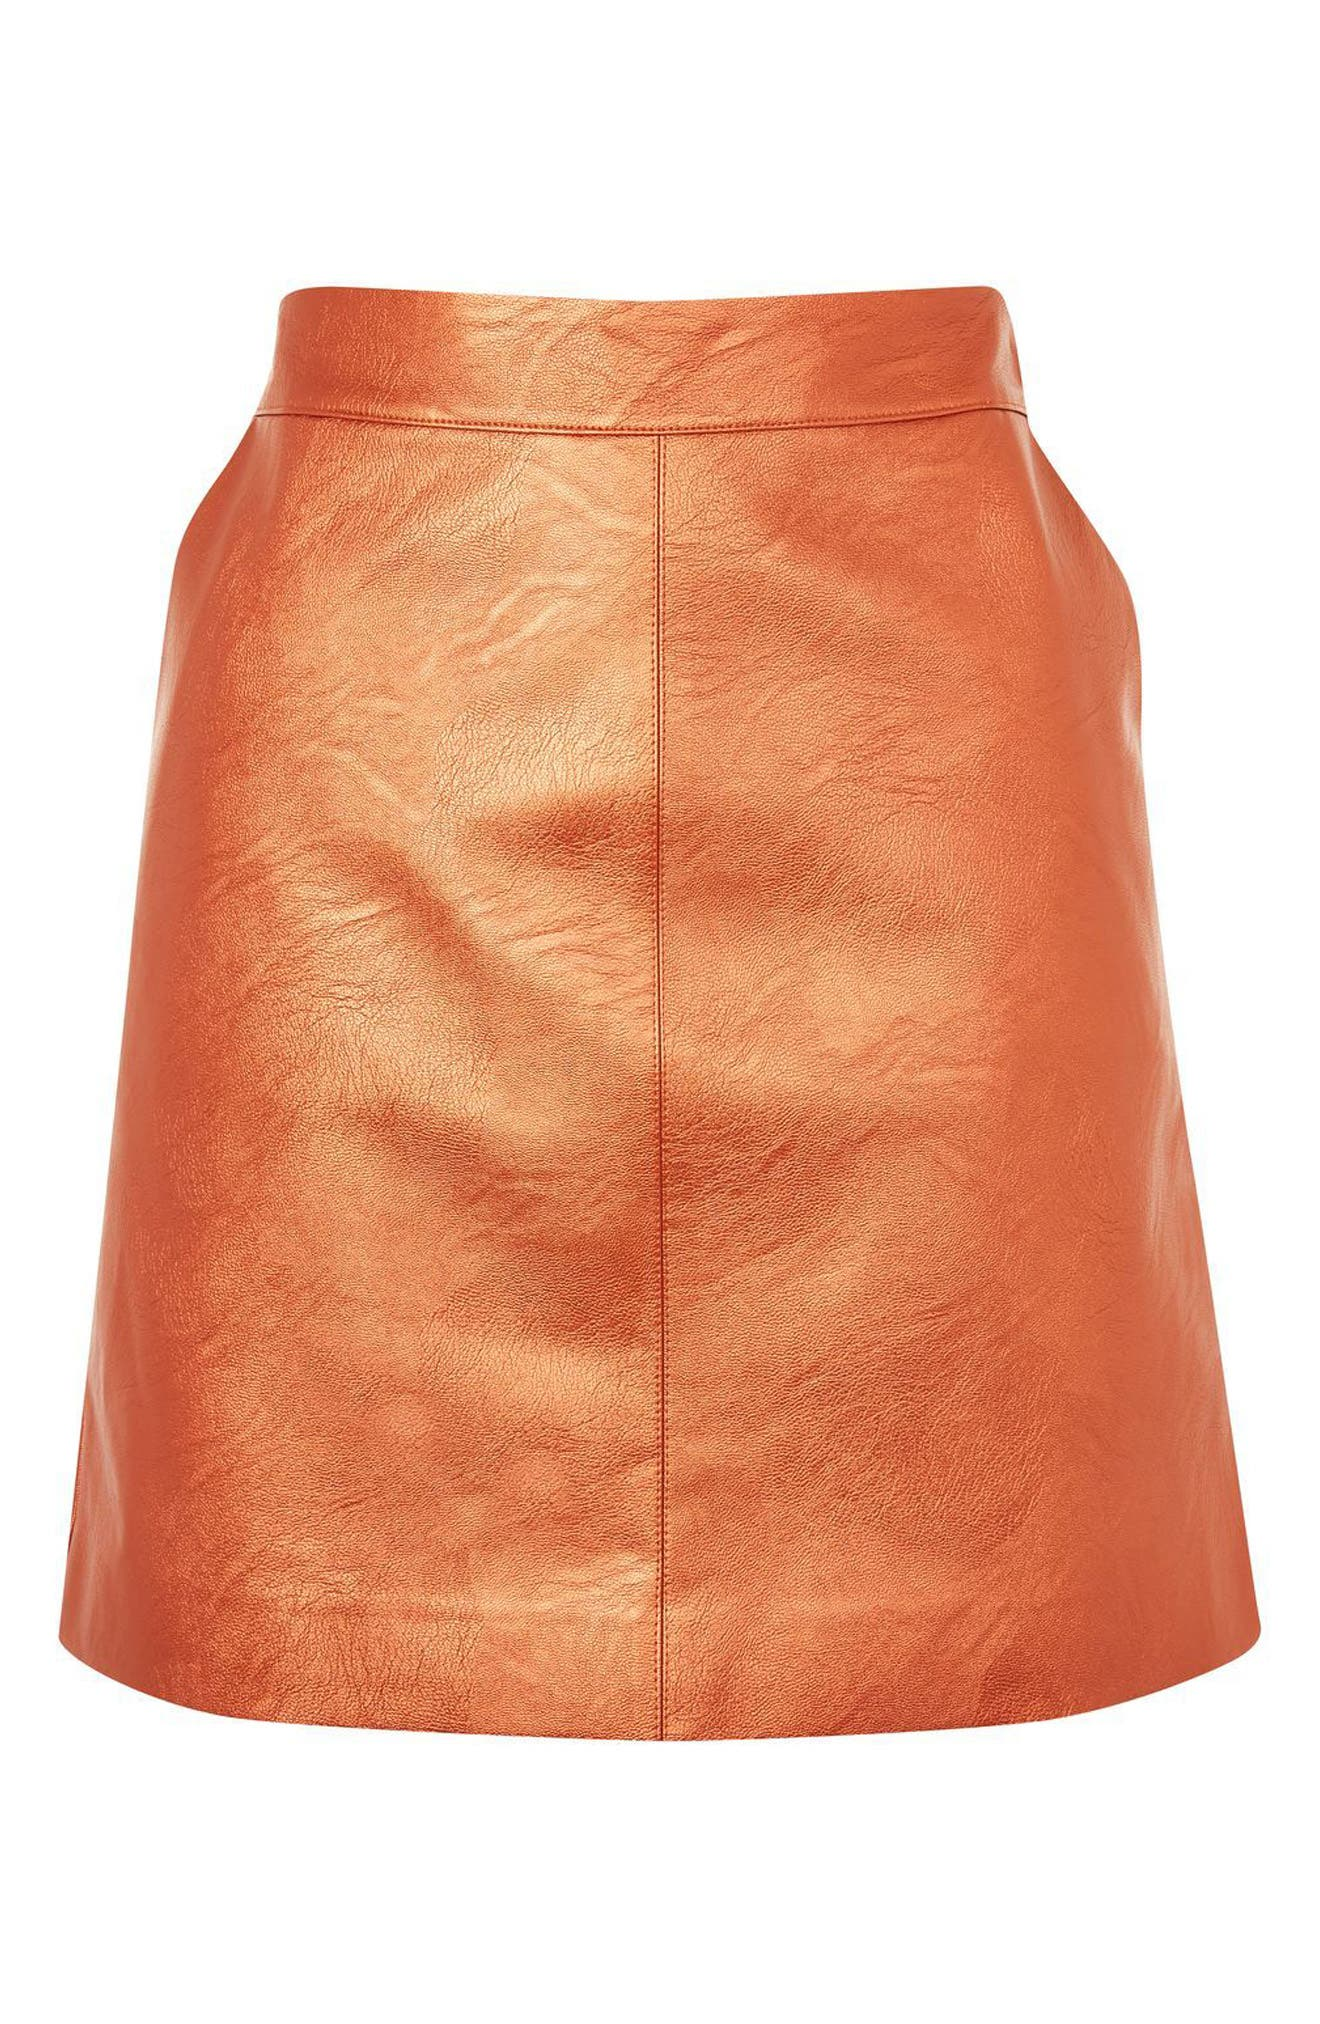 Faux Leather Skirt,                             Alternate thumbnail 3, color,                             Rust